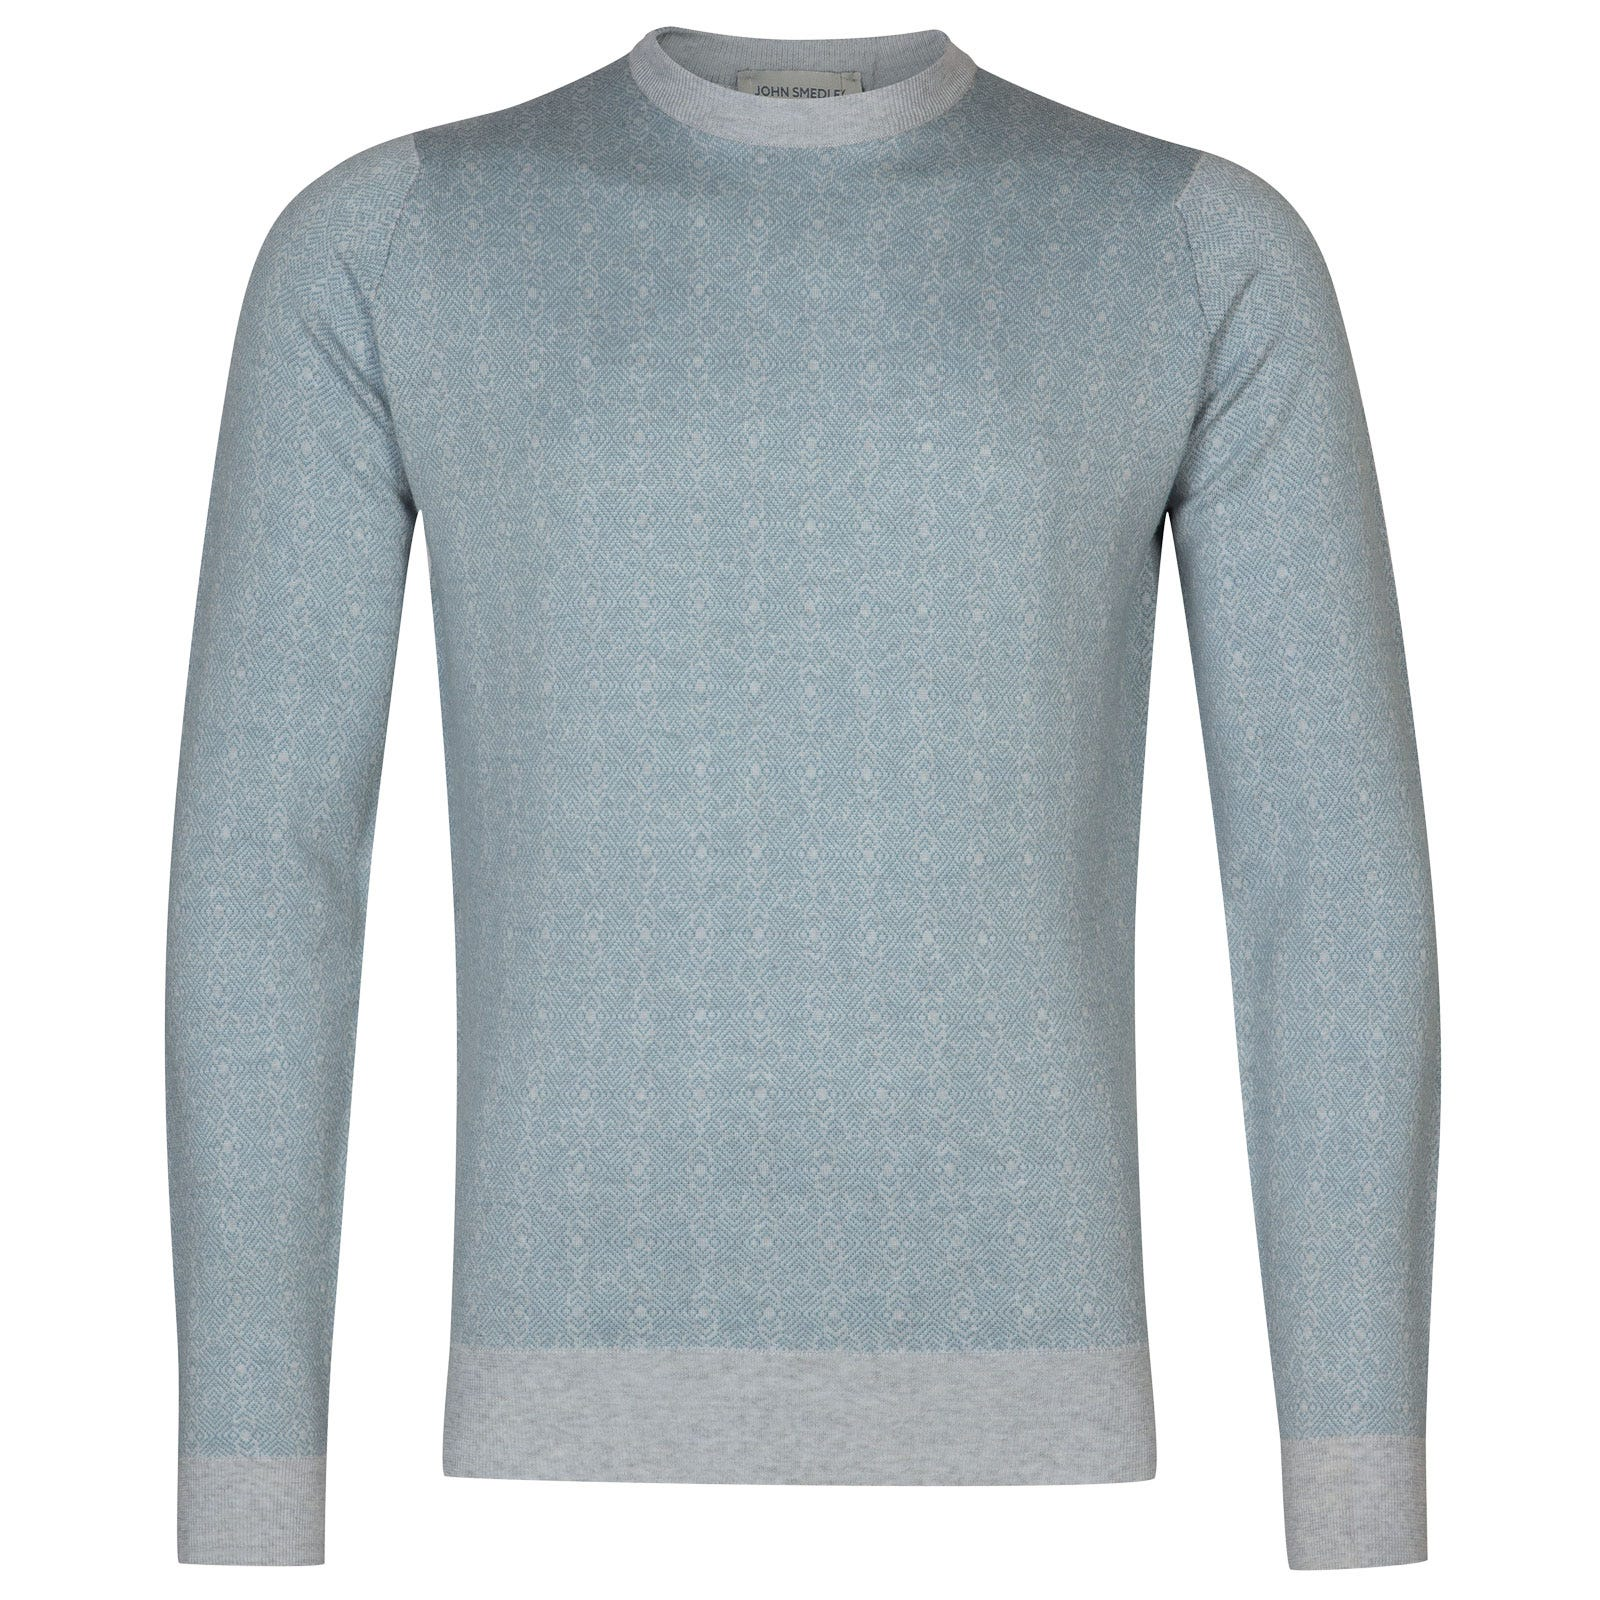 John Smedley rutland Merino Wool Pullover in Bardot Grey/Summit Blue-M